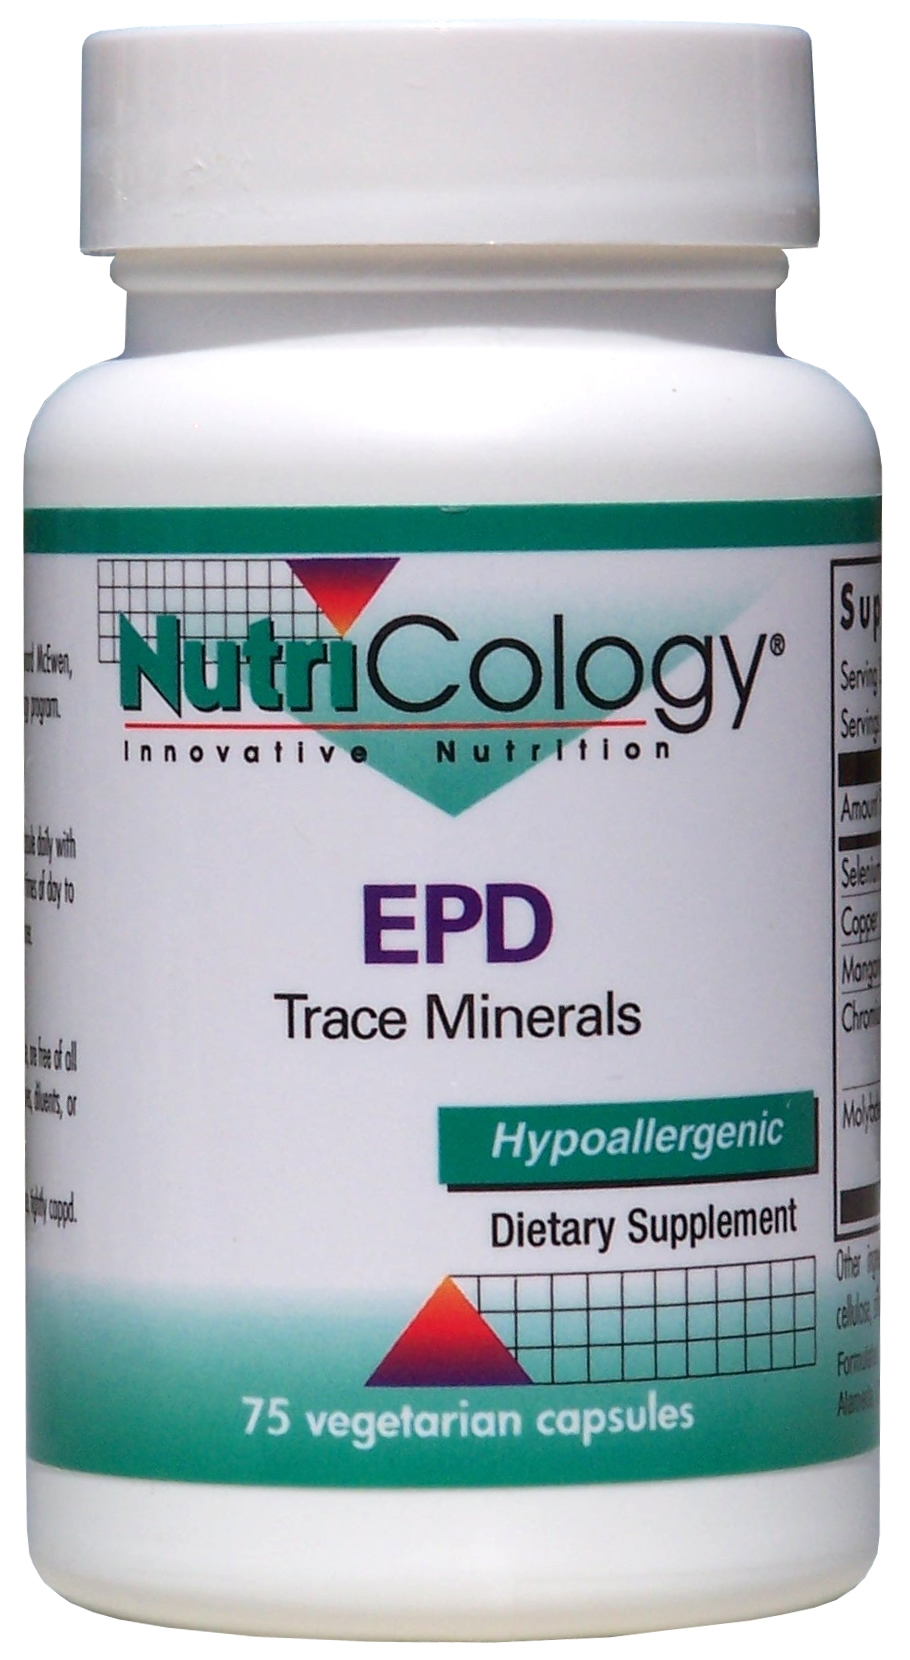 EPD Trace Minerals 75 Vegetarian Caps by Nutricology